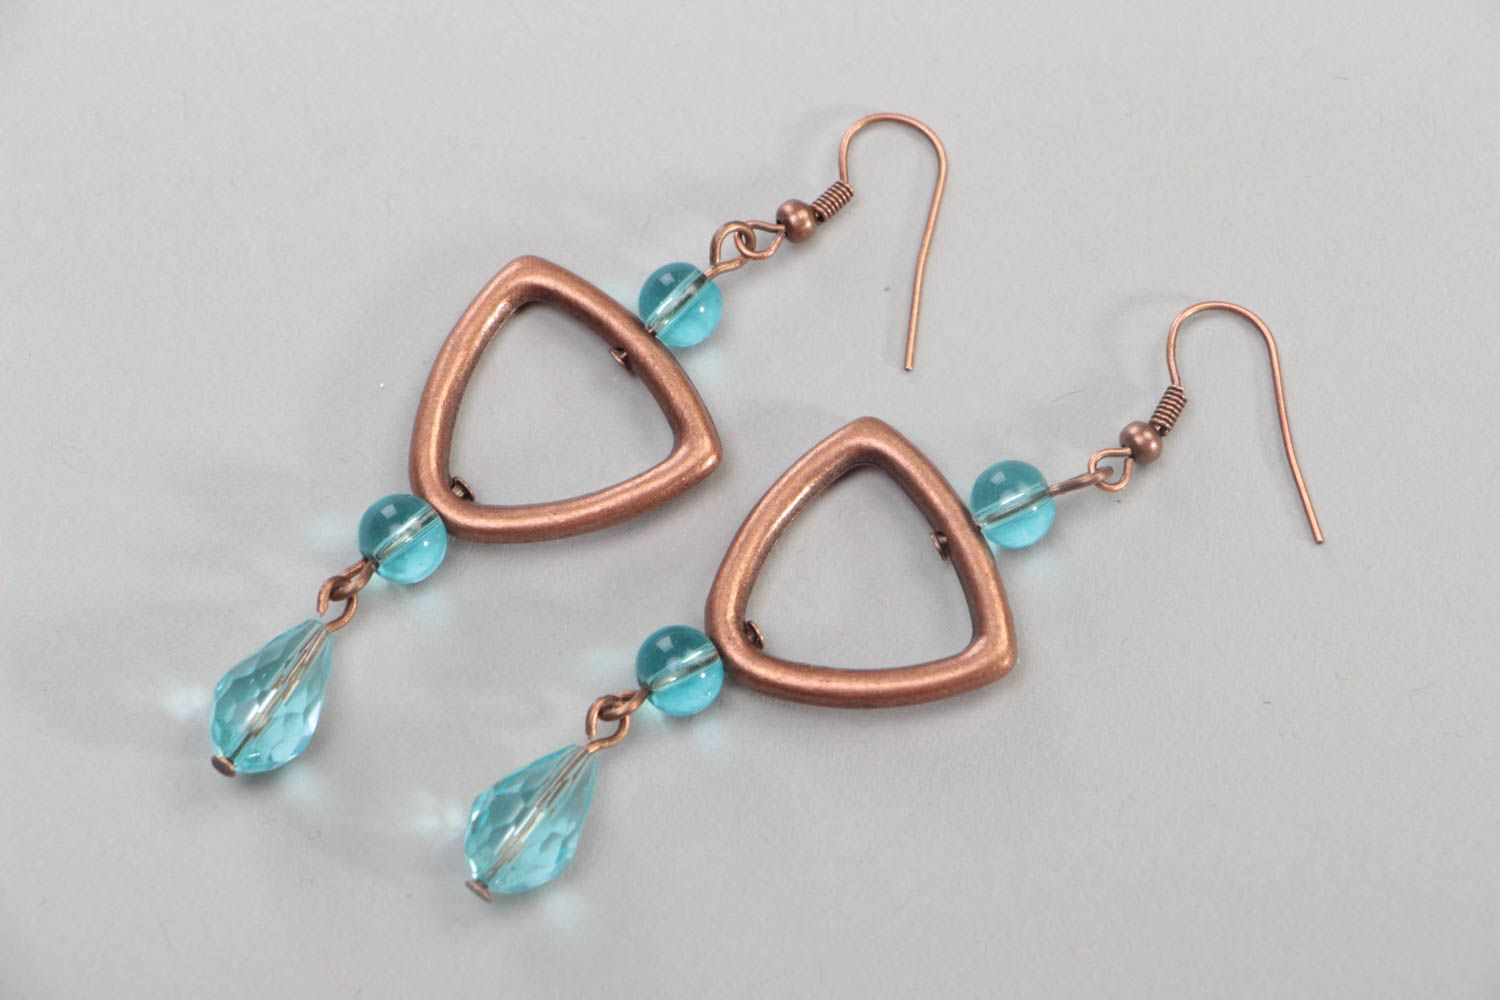 Handmade massive earrings accessories made of crystal beads copper jewelry photo 2